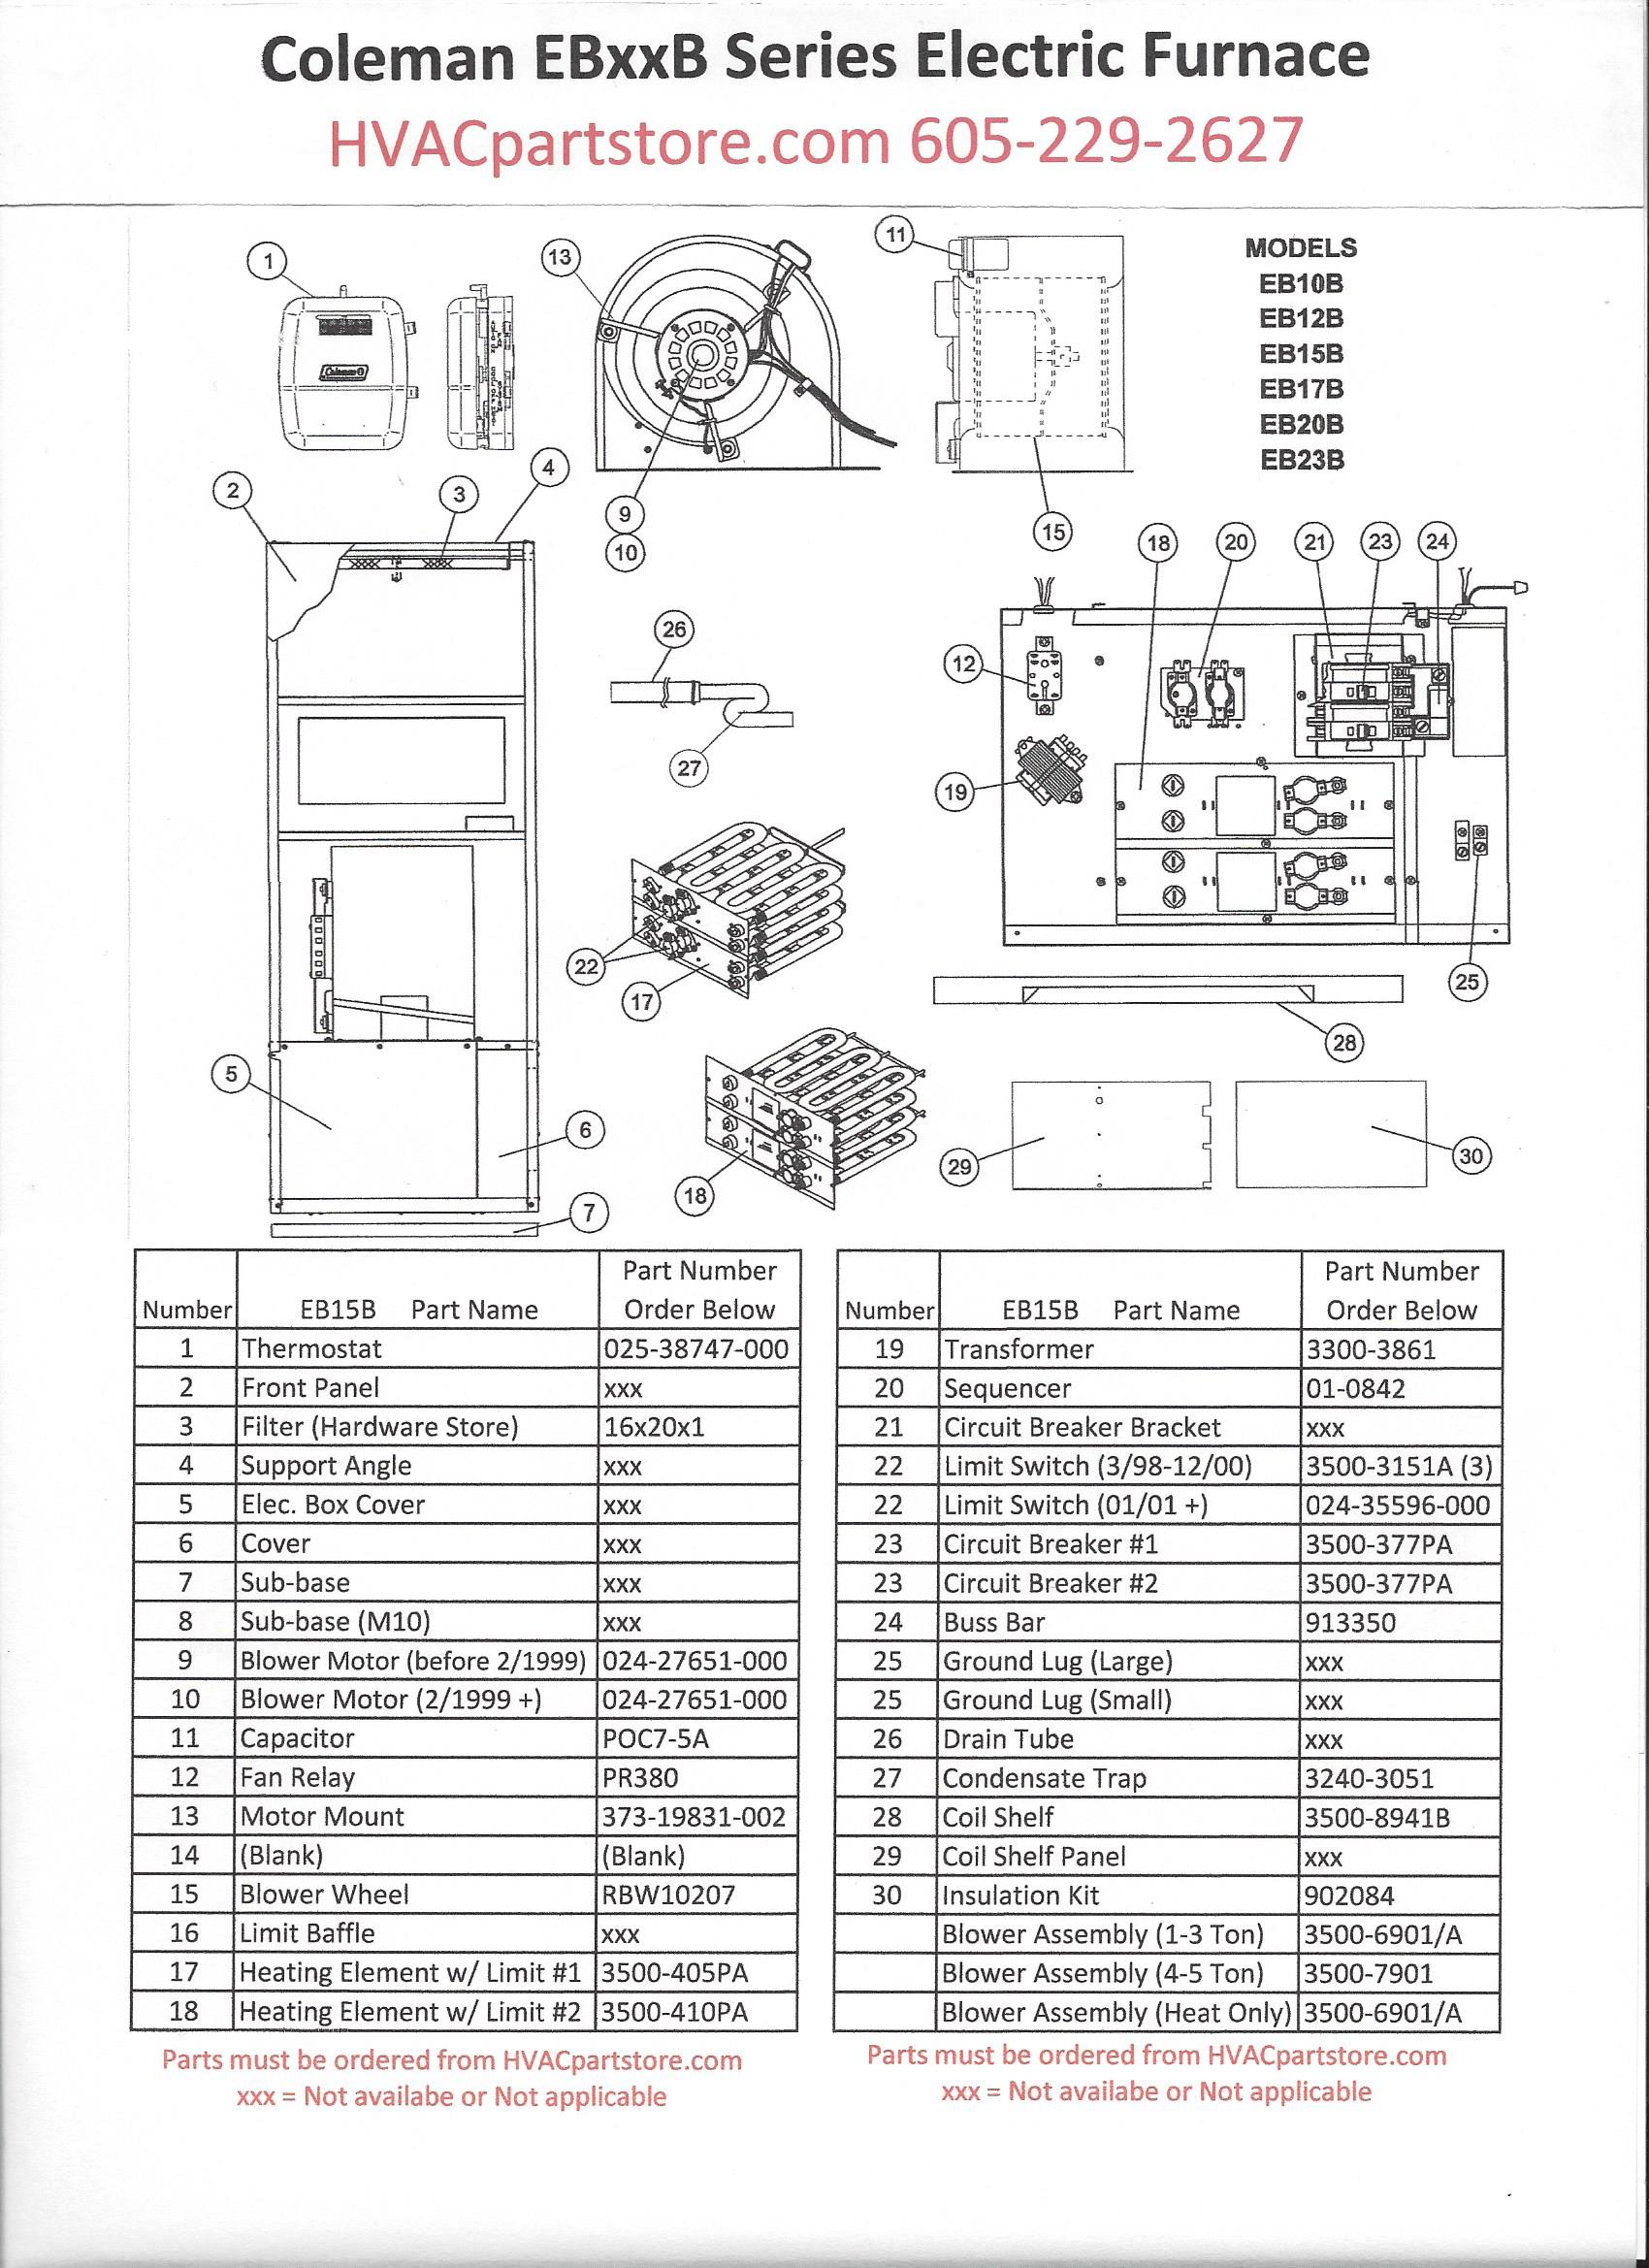 Coleman Furnace Schematic